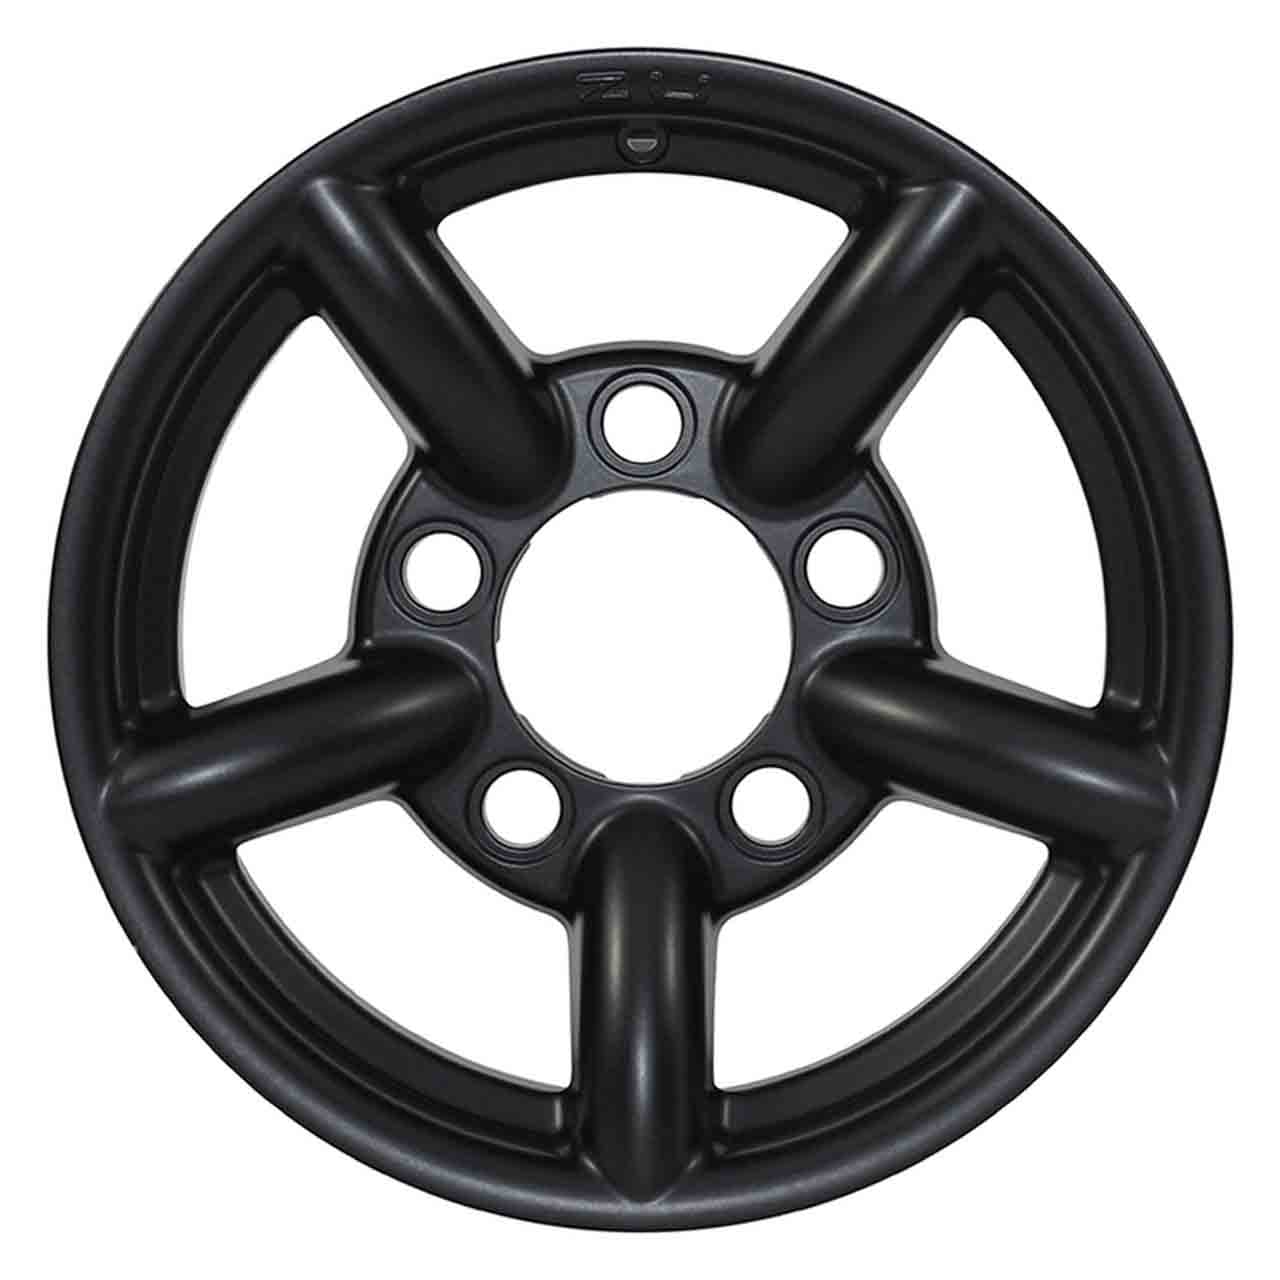 Defender Discovery 1 Range Rover Classic Ruota 16 X 7 Colore Nero Opaco GR2-00825